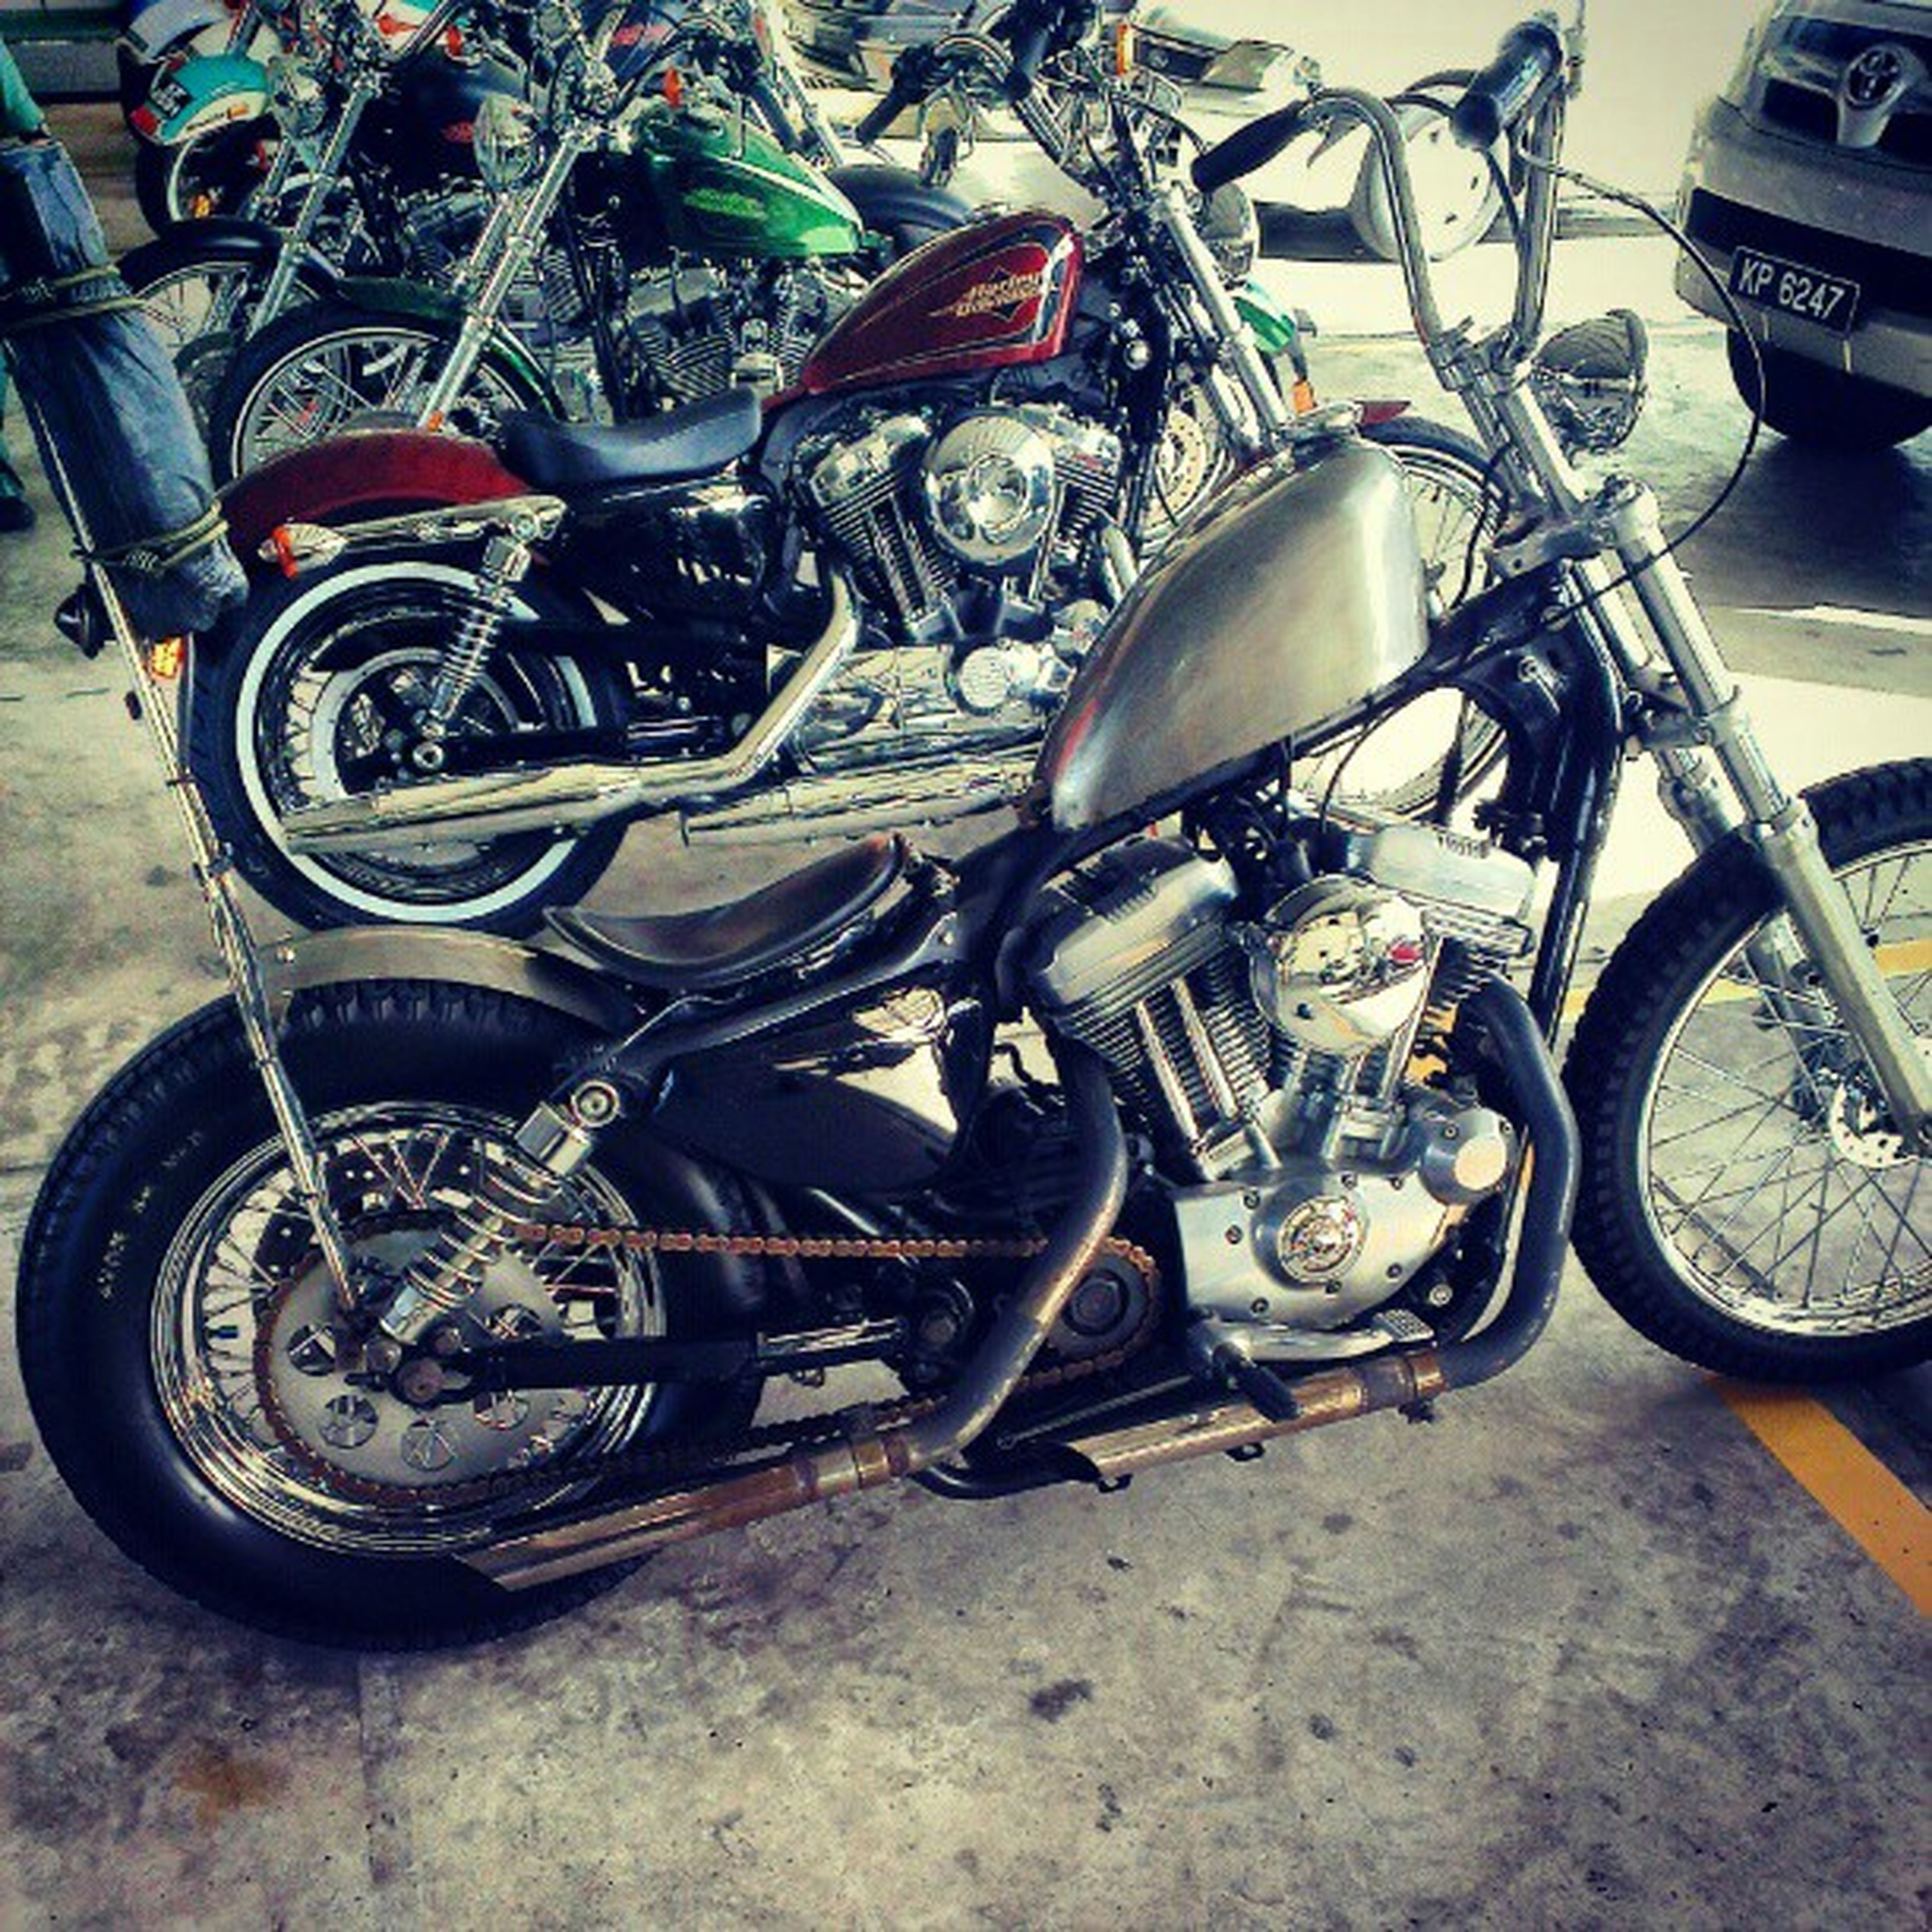 Ok.....now, will the real Sportster72 ? please stand up!? Thehobo Yuppiehippy